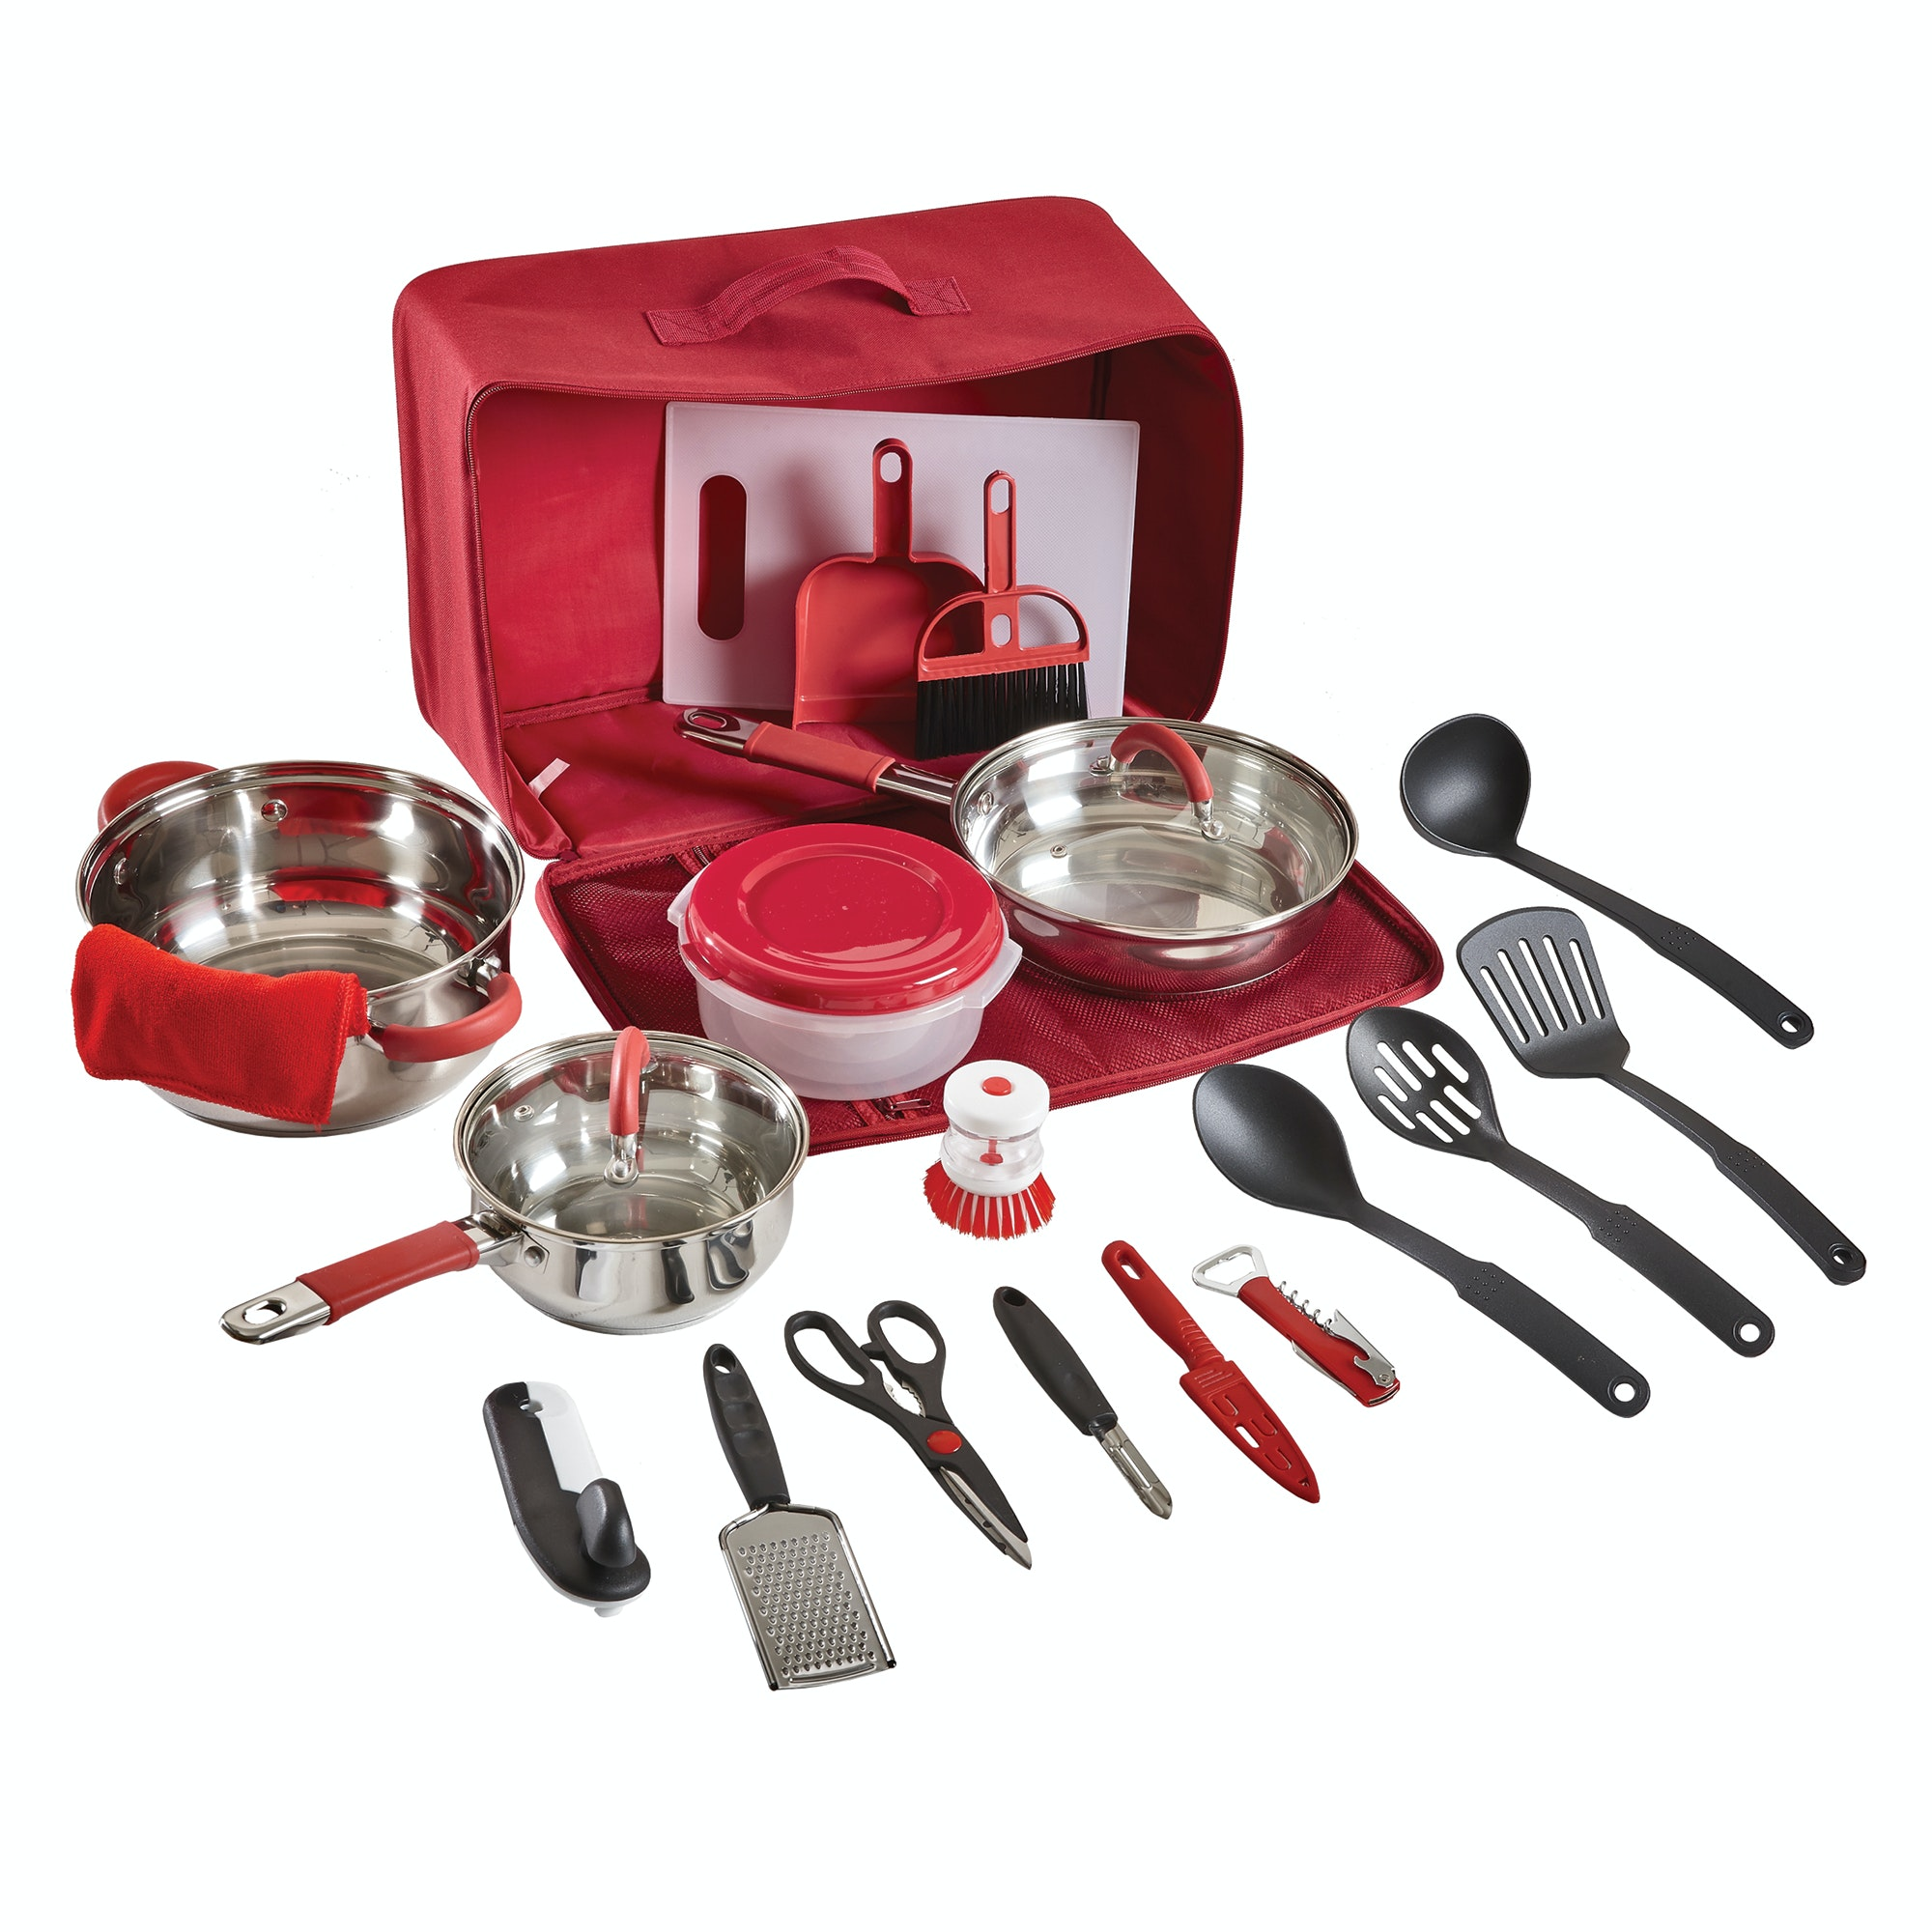 Camp kitchen set 20 piece red for Kitchen kitchen set